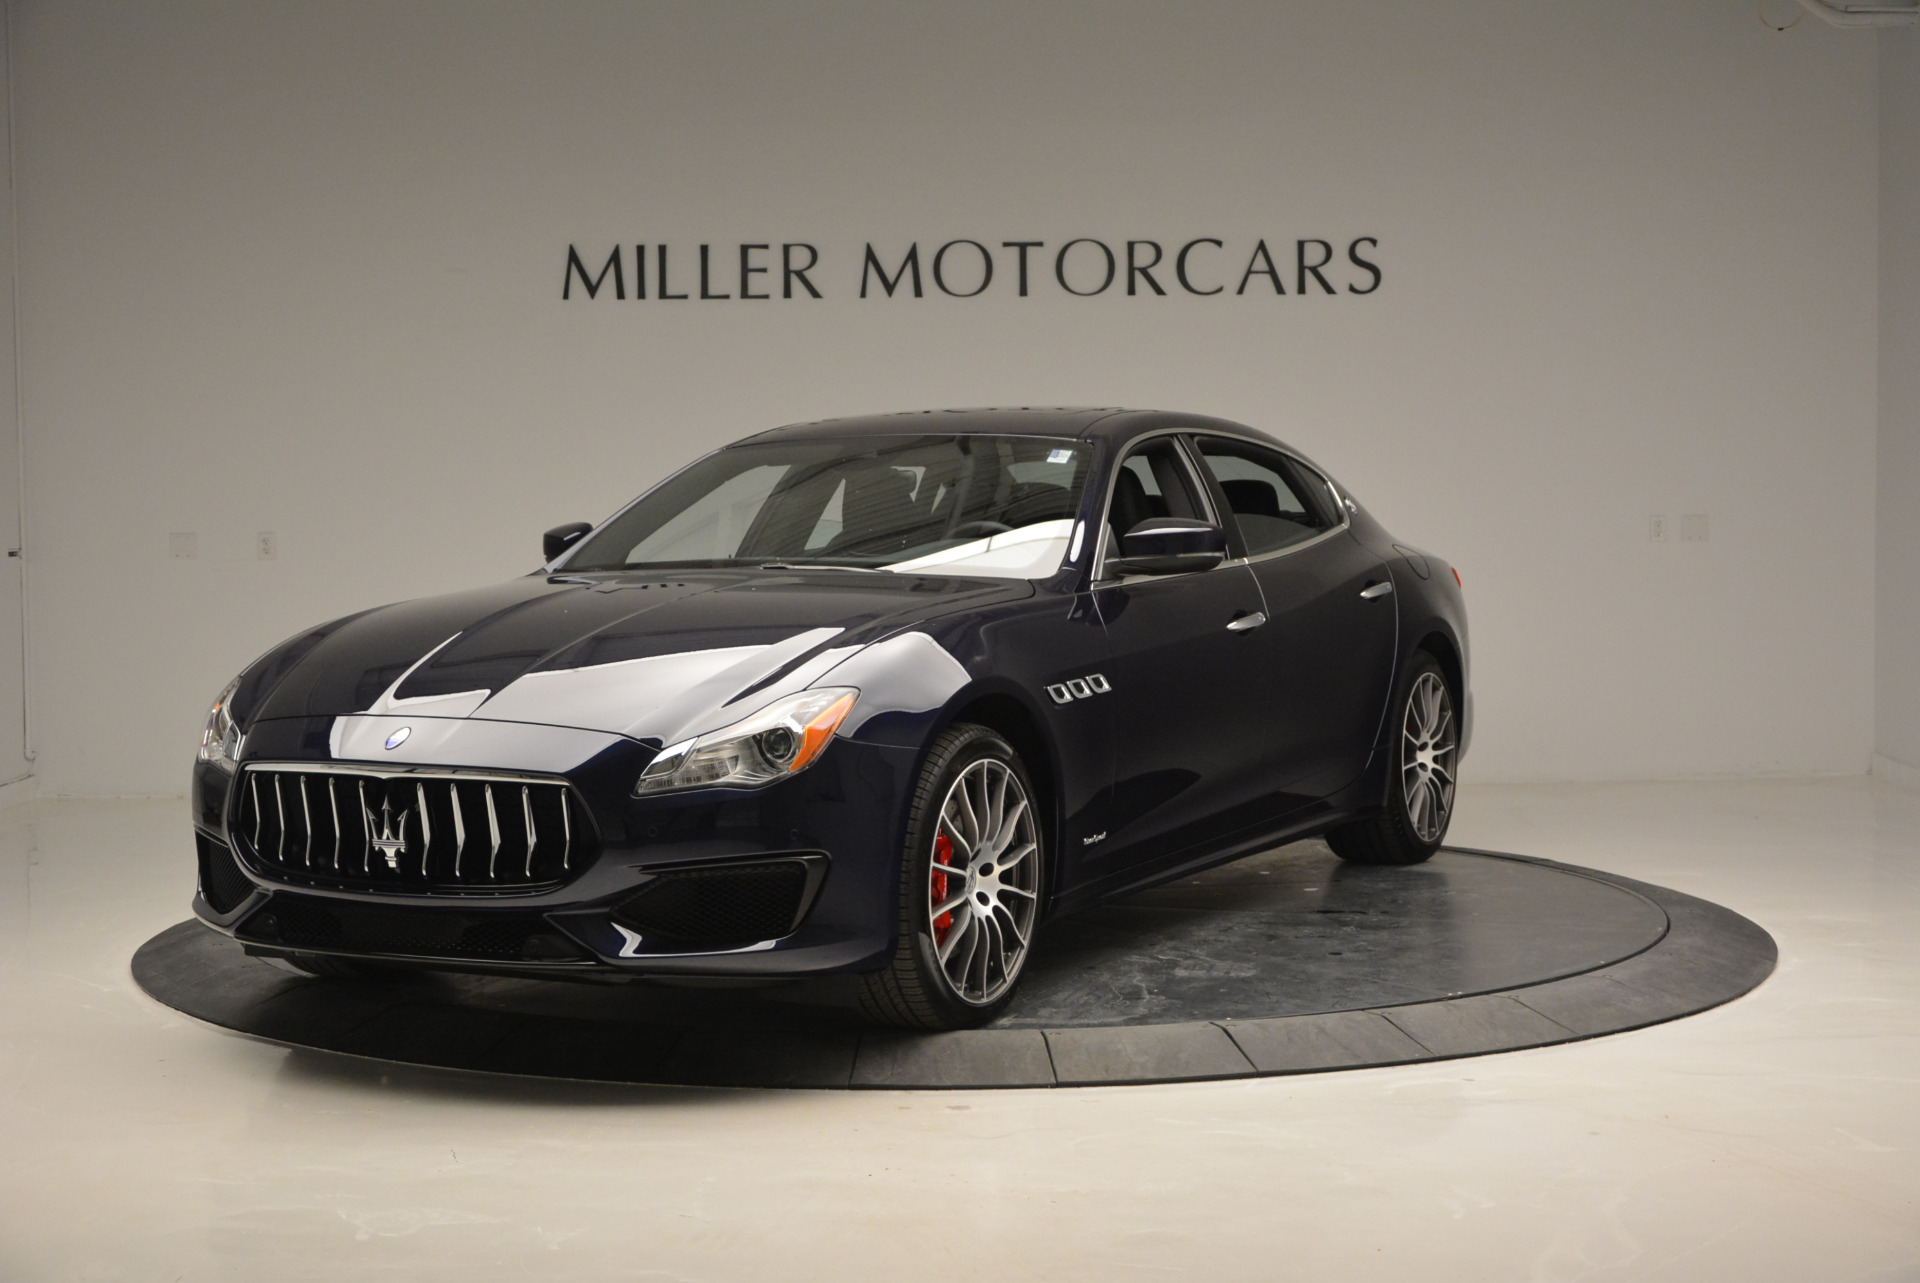 New 2017 Maserati Quattroporte S Q4 GranSport for sale Sold at Alfa Romeo of Westport in Westport CT 06880 1